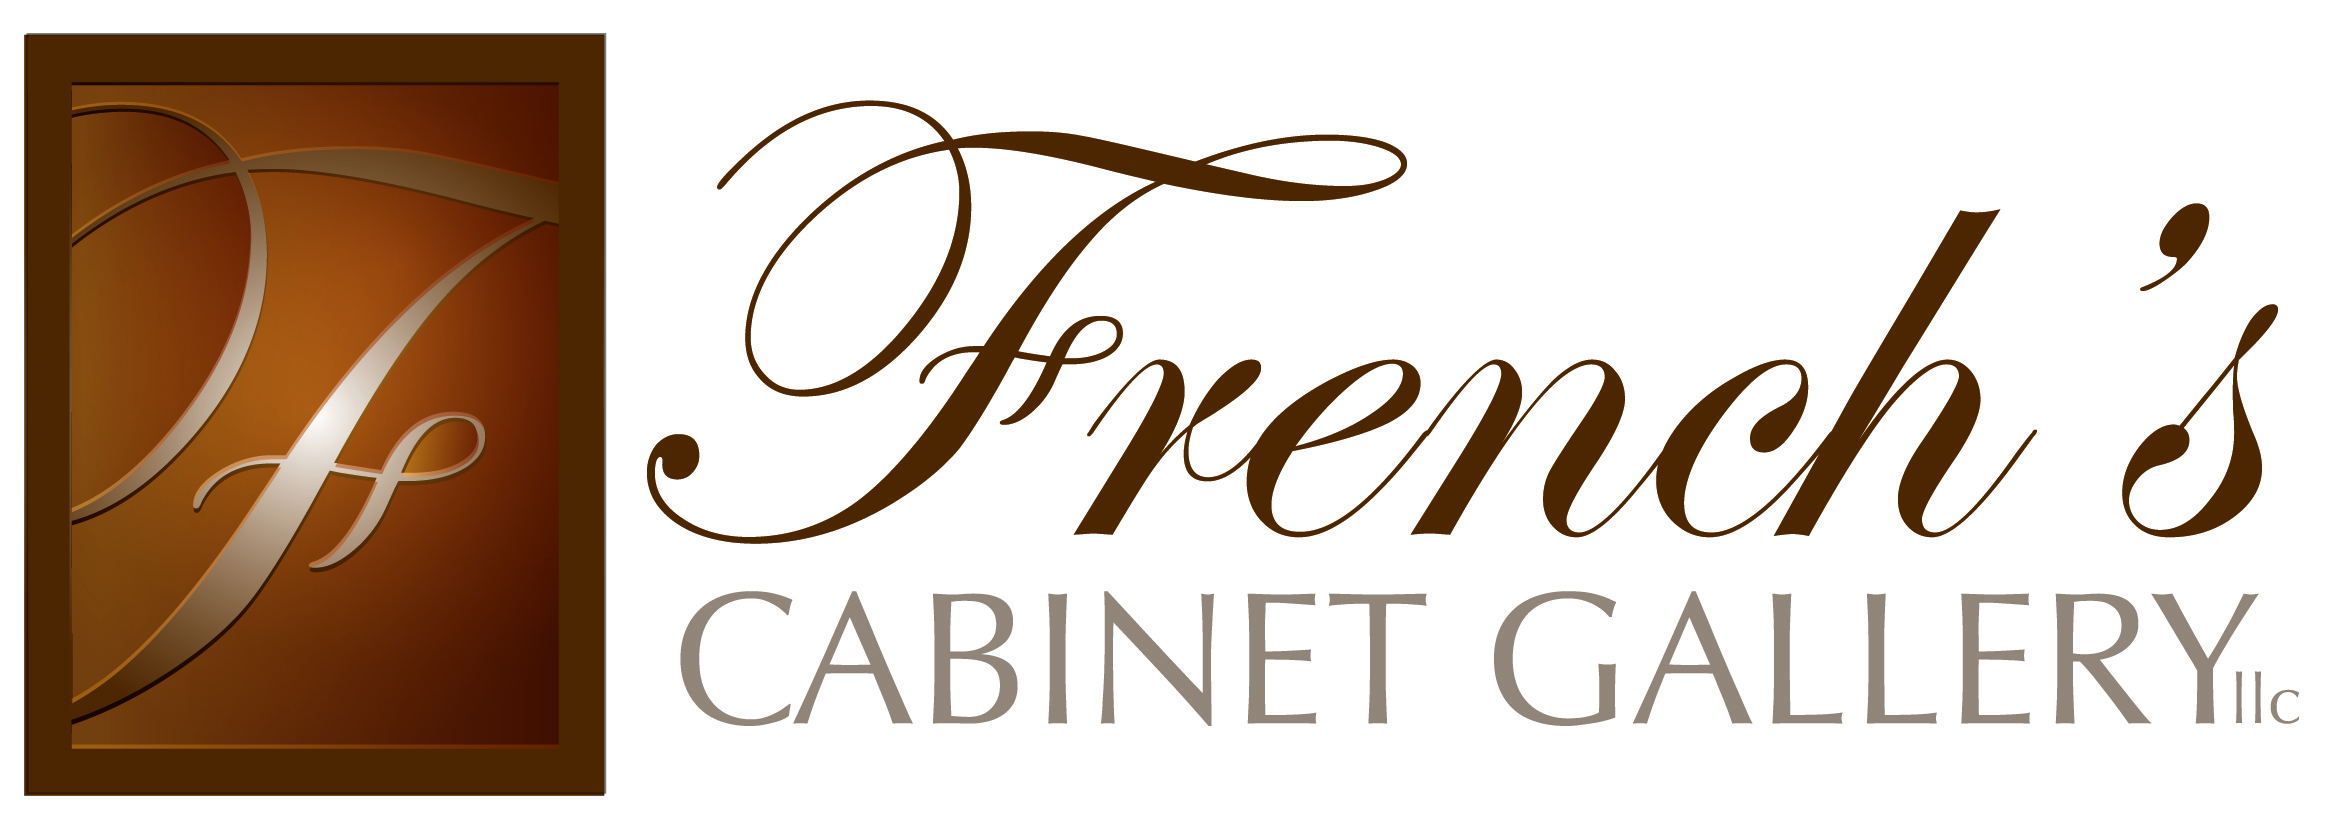 French's Cabinet Gallery